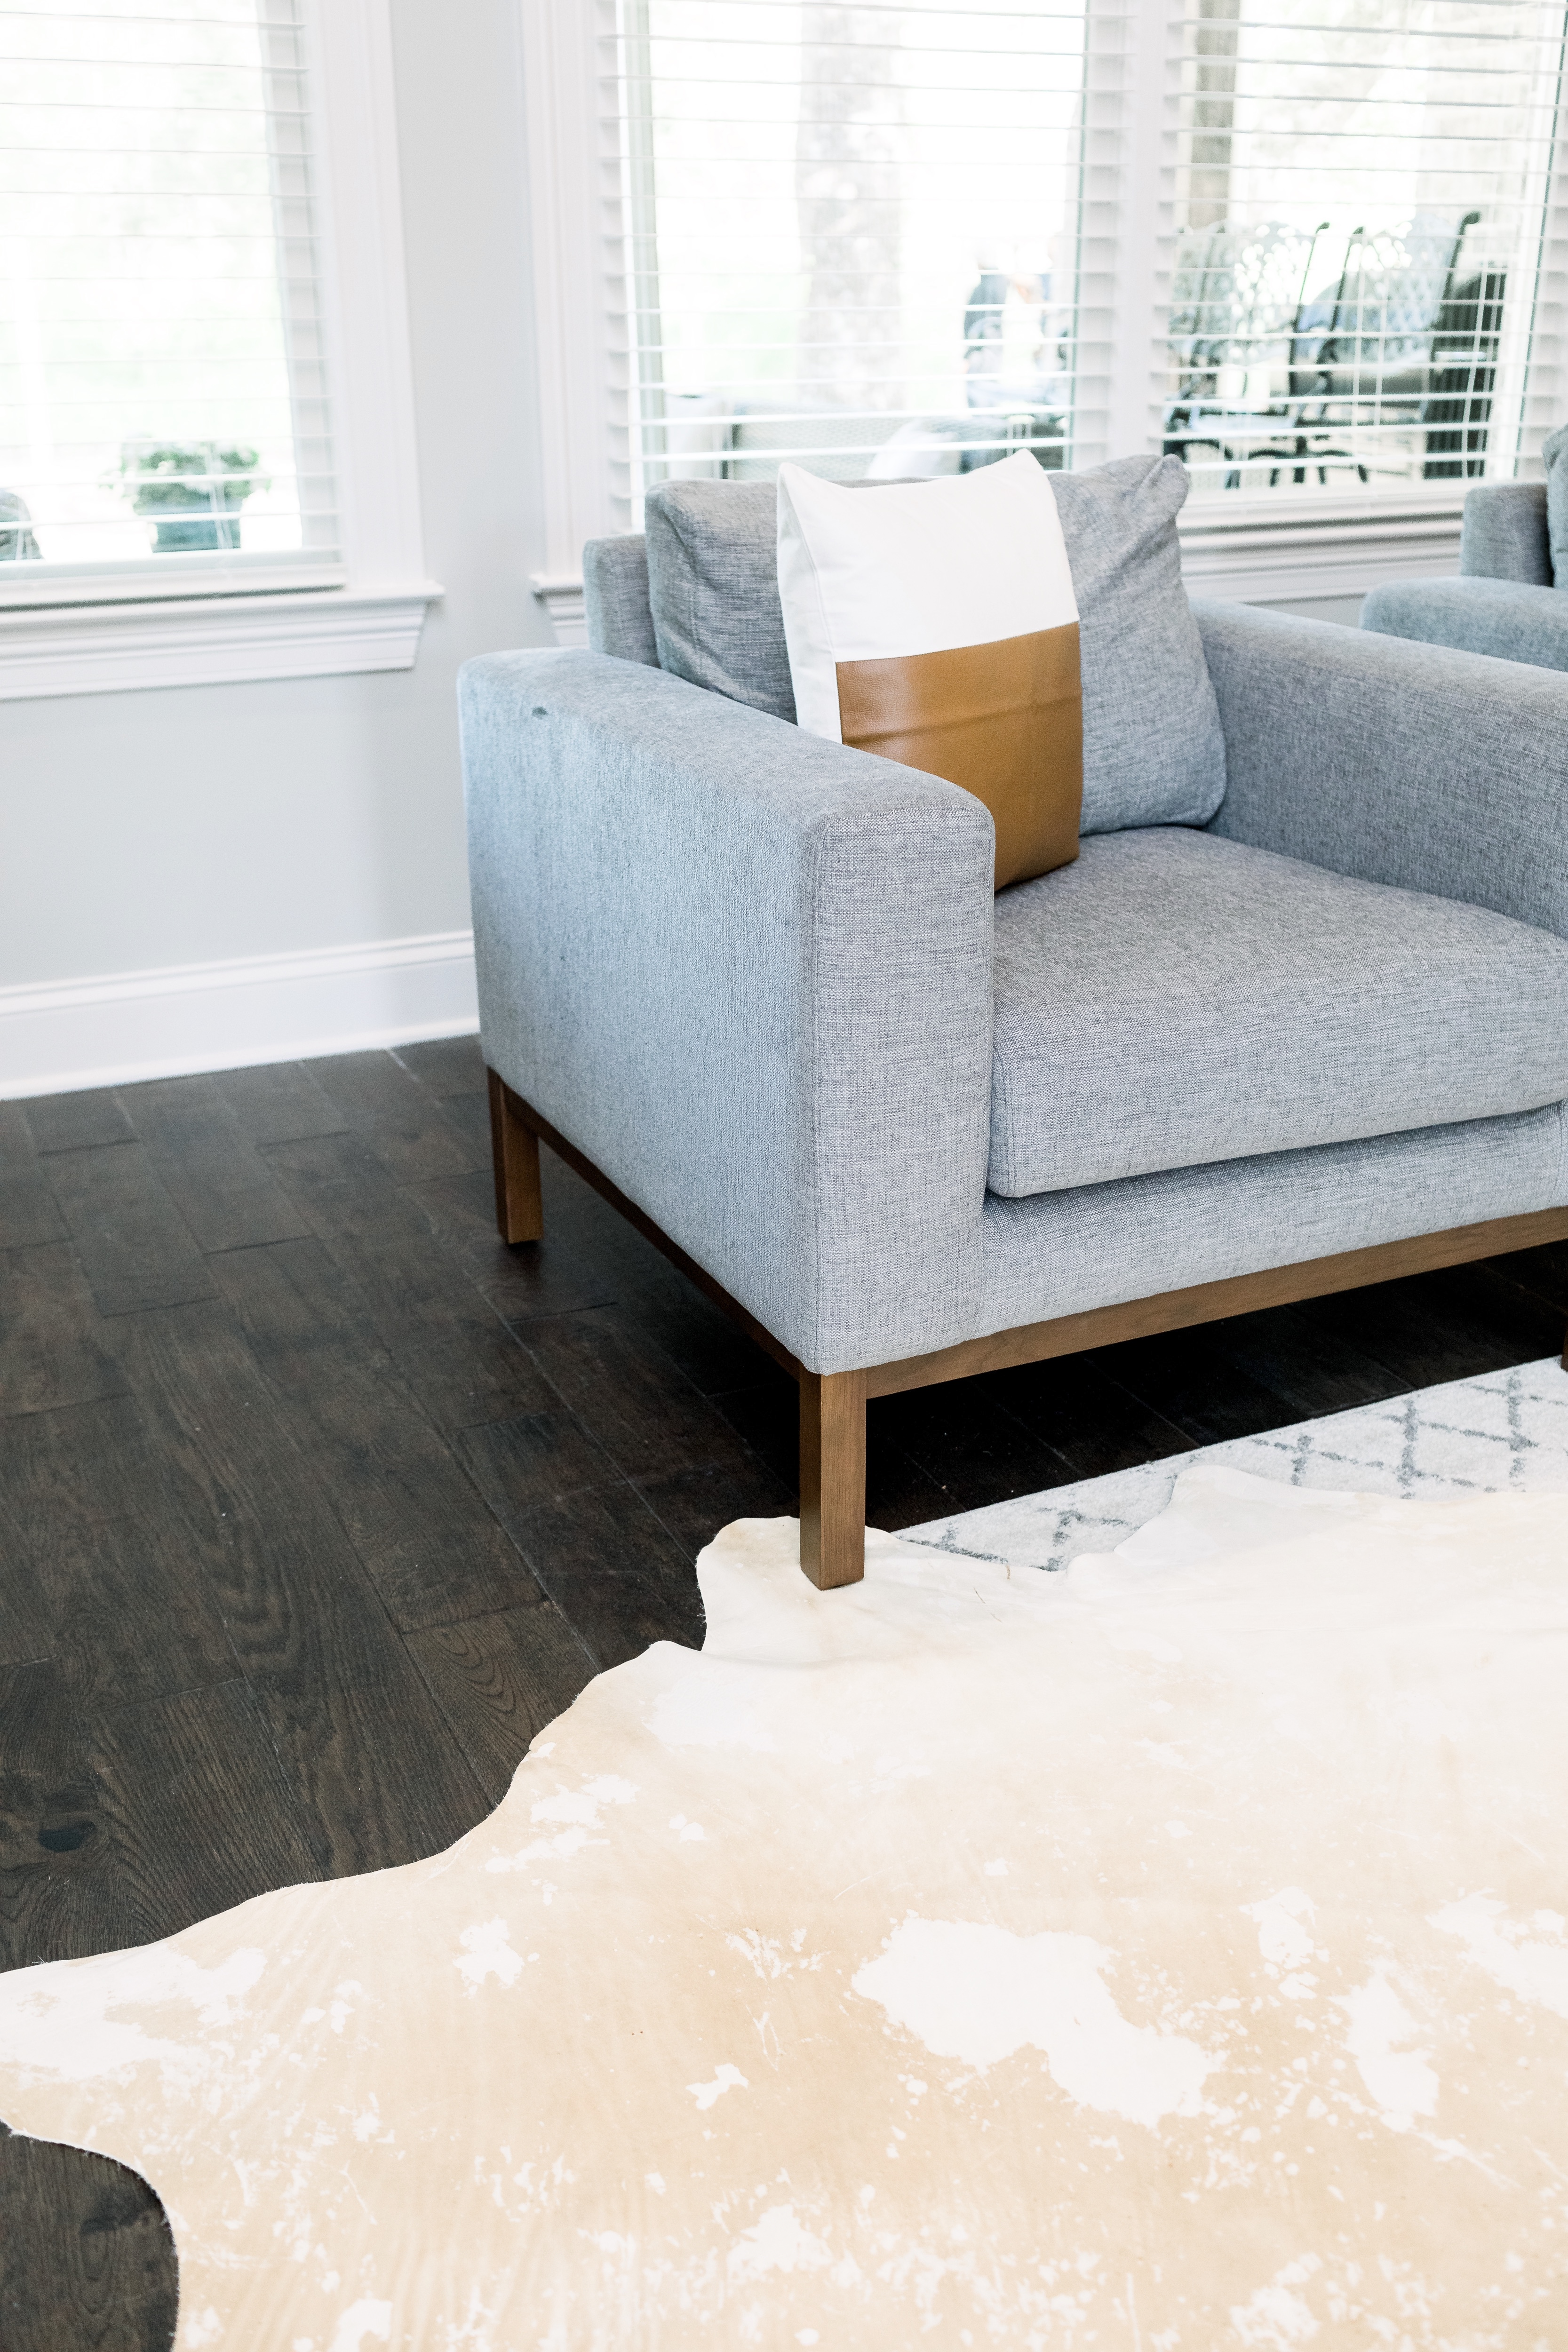 How to choose the best Wayfair rug for your home, tips featured by top US lifestyle blog, Walking in Memphis in High Heels.